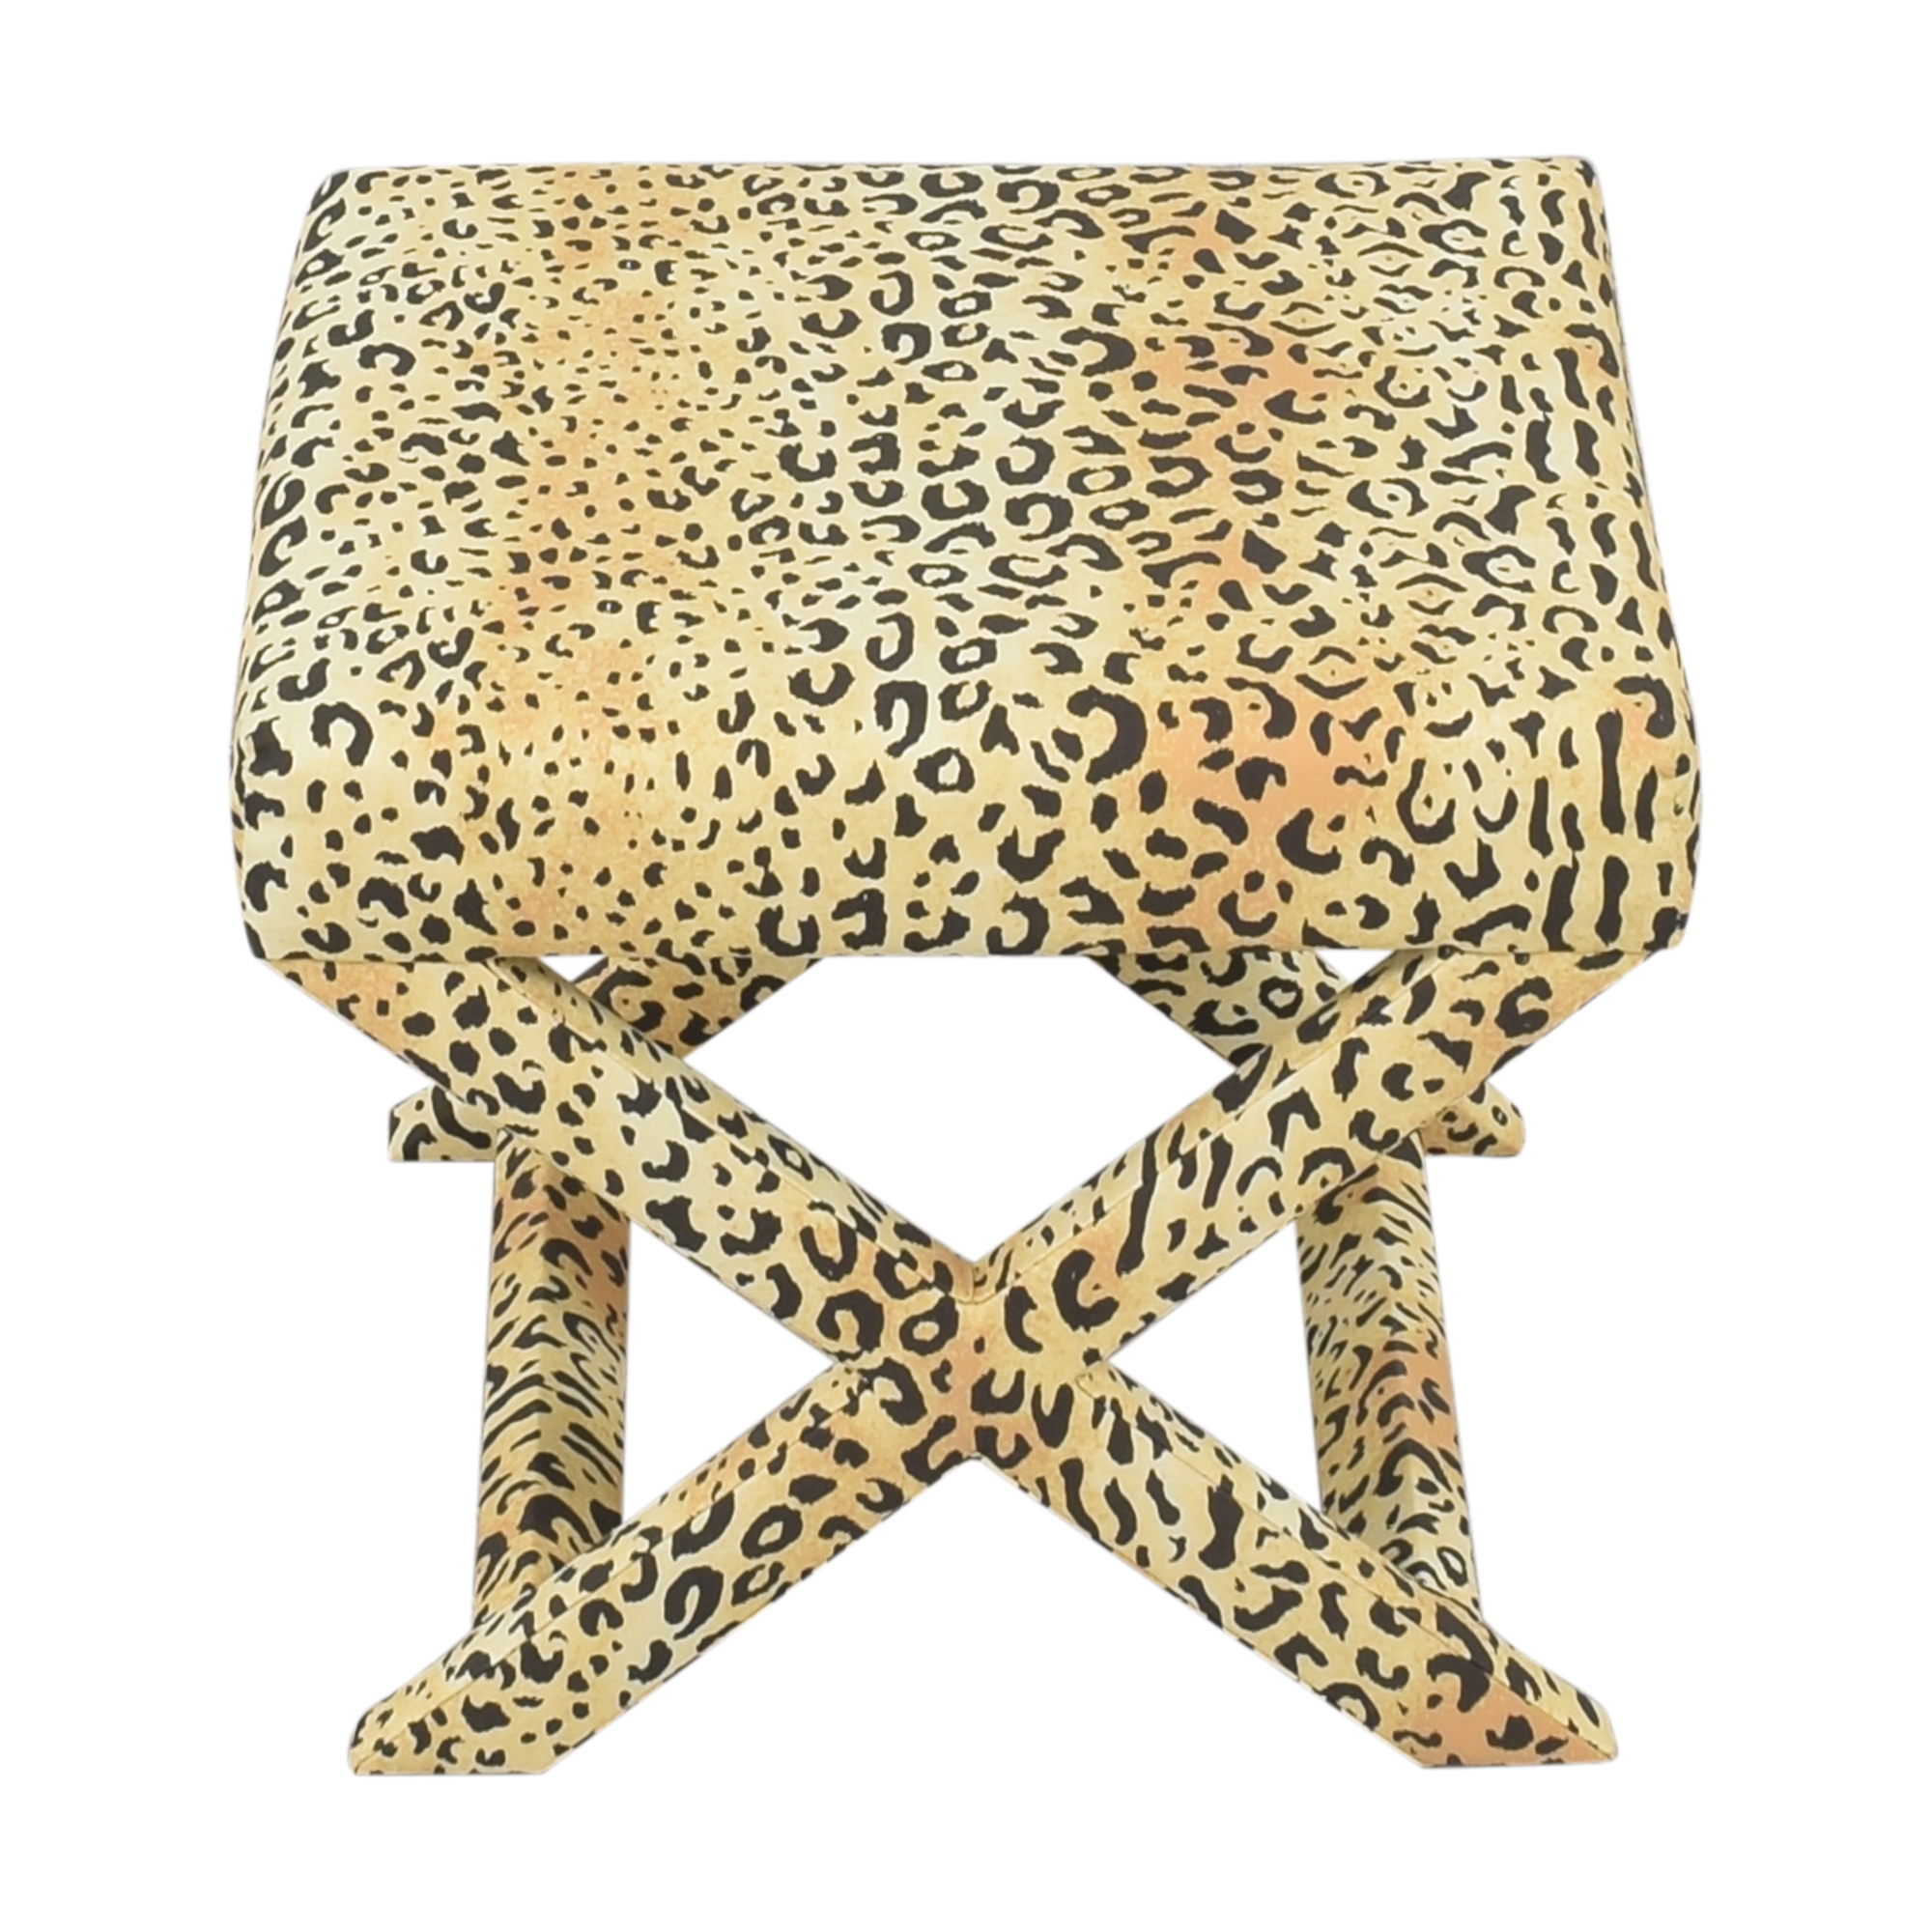 shop The Inside Leopard X Bench The Inside Chairs